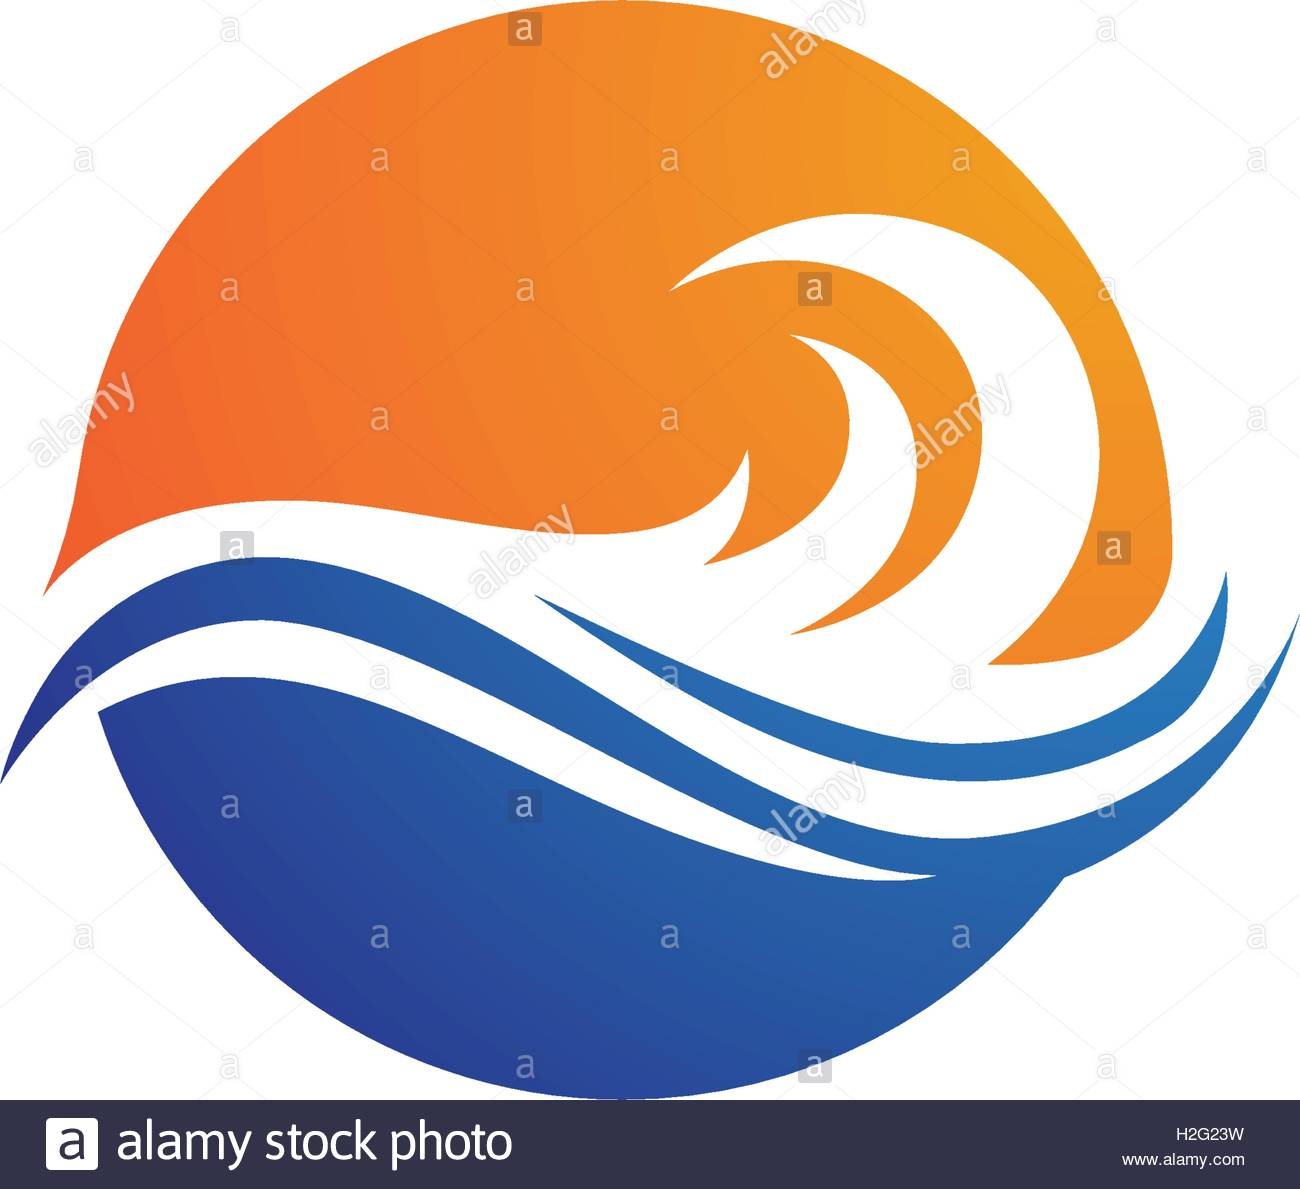 1300x1189 Water wave Logo Template Stock Vector Art amp Illustration, Vector